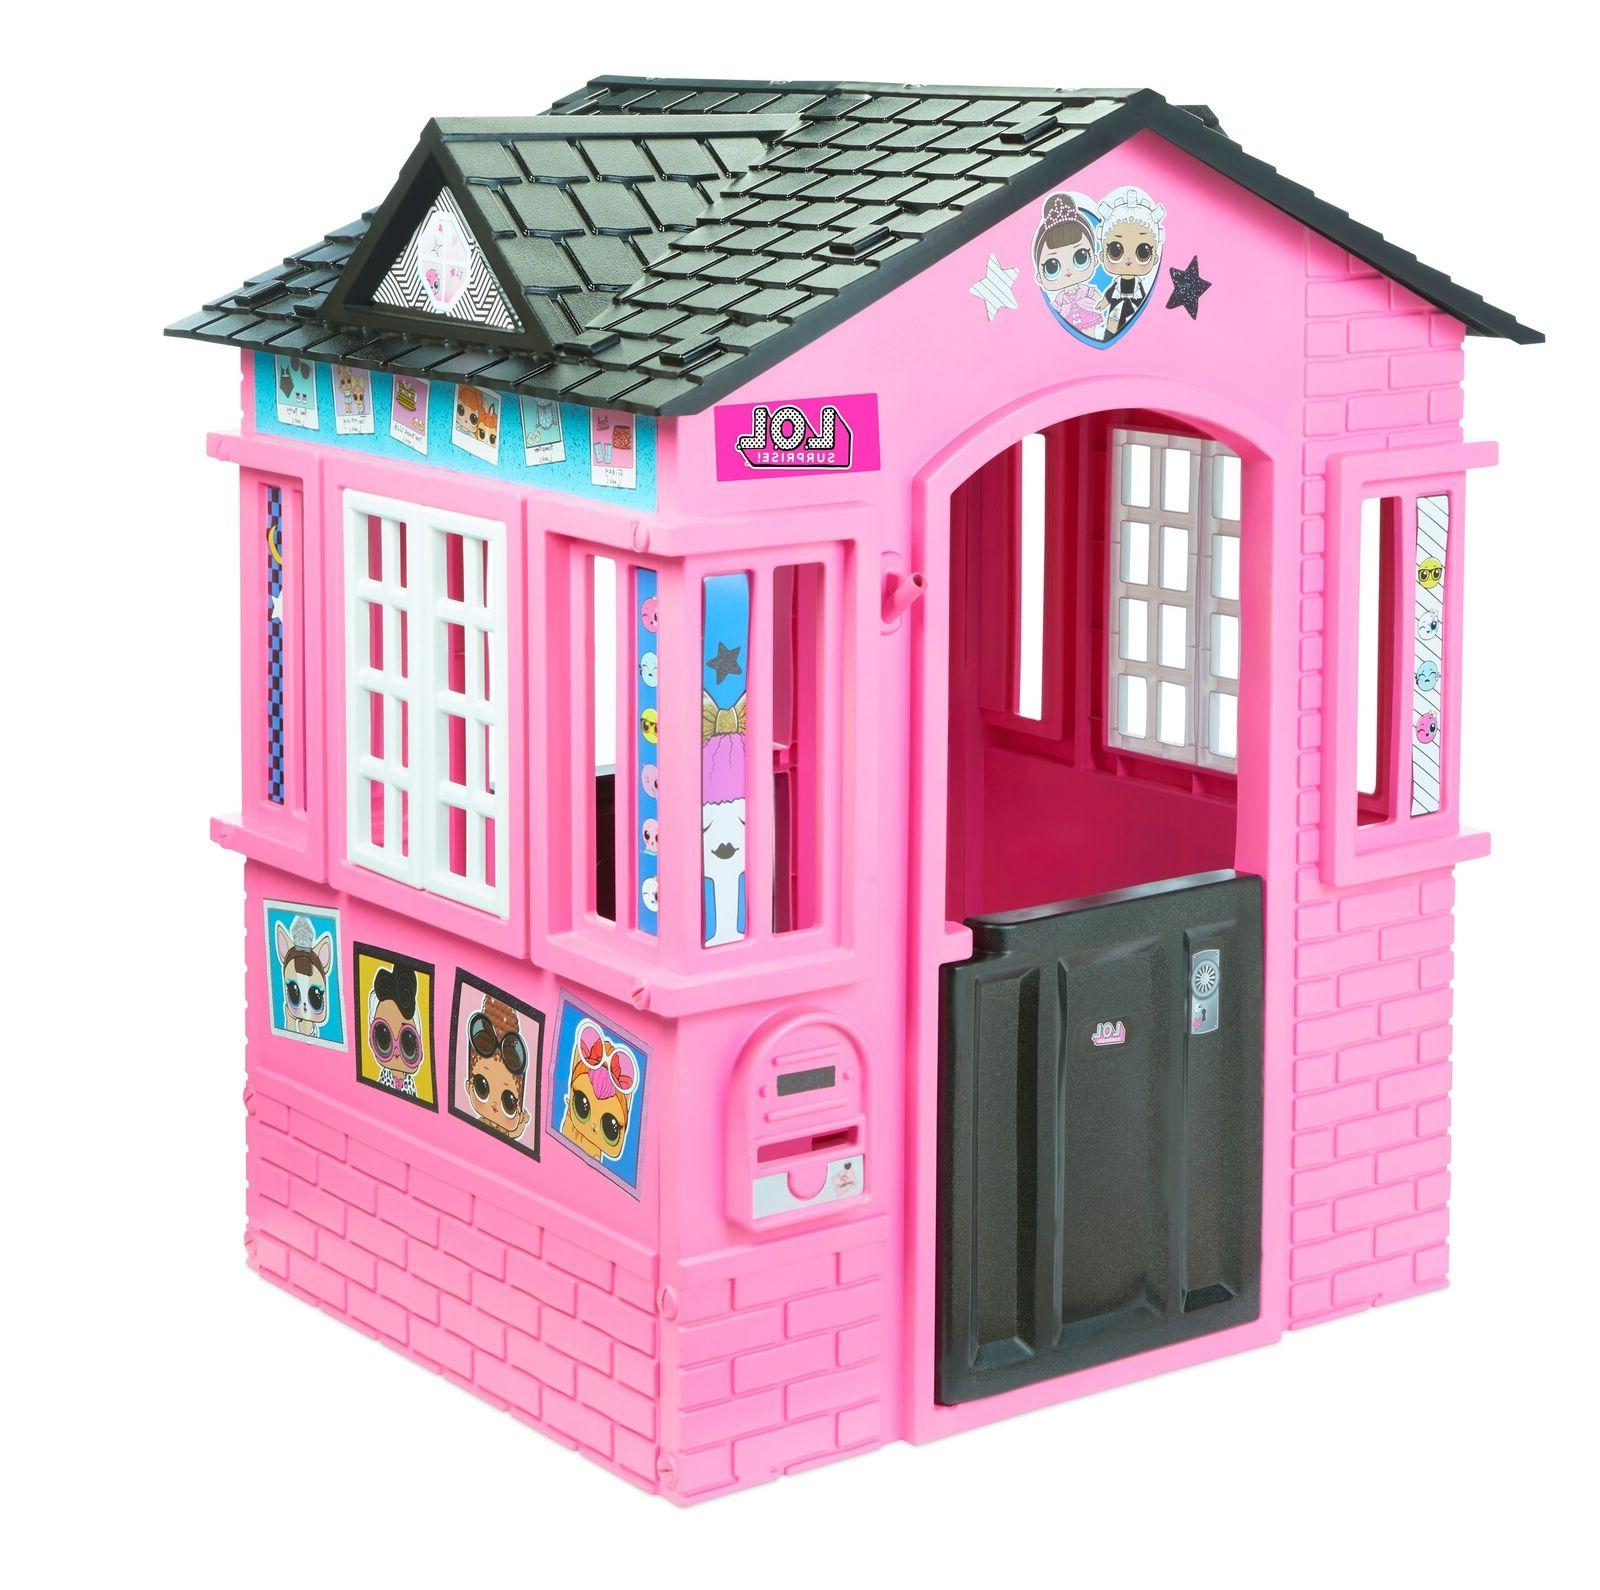 LOL Girls Playhouse Indoor Outdoor Cottage Toy